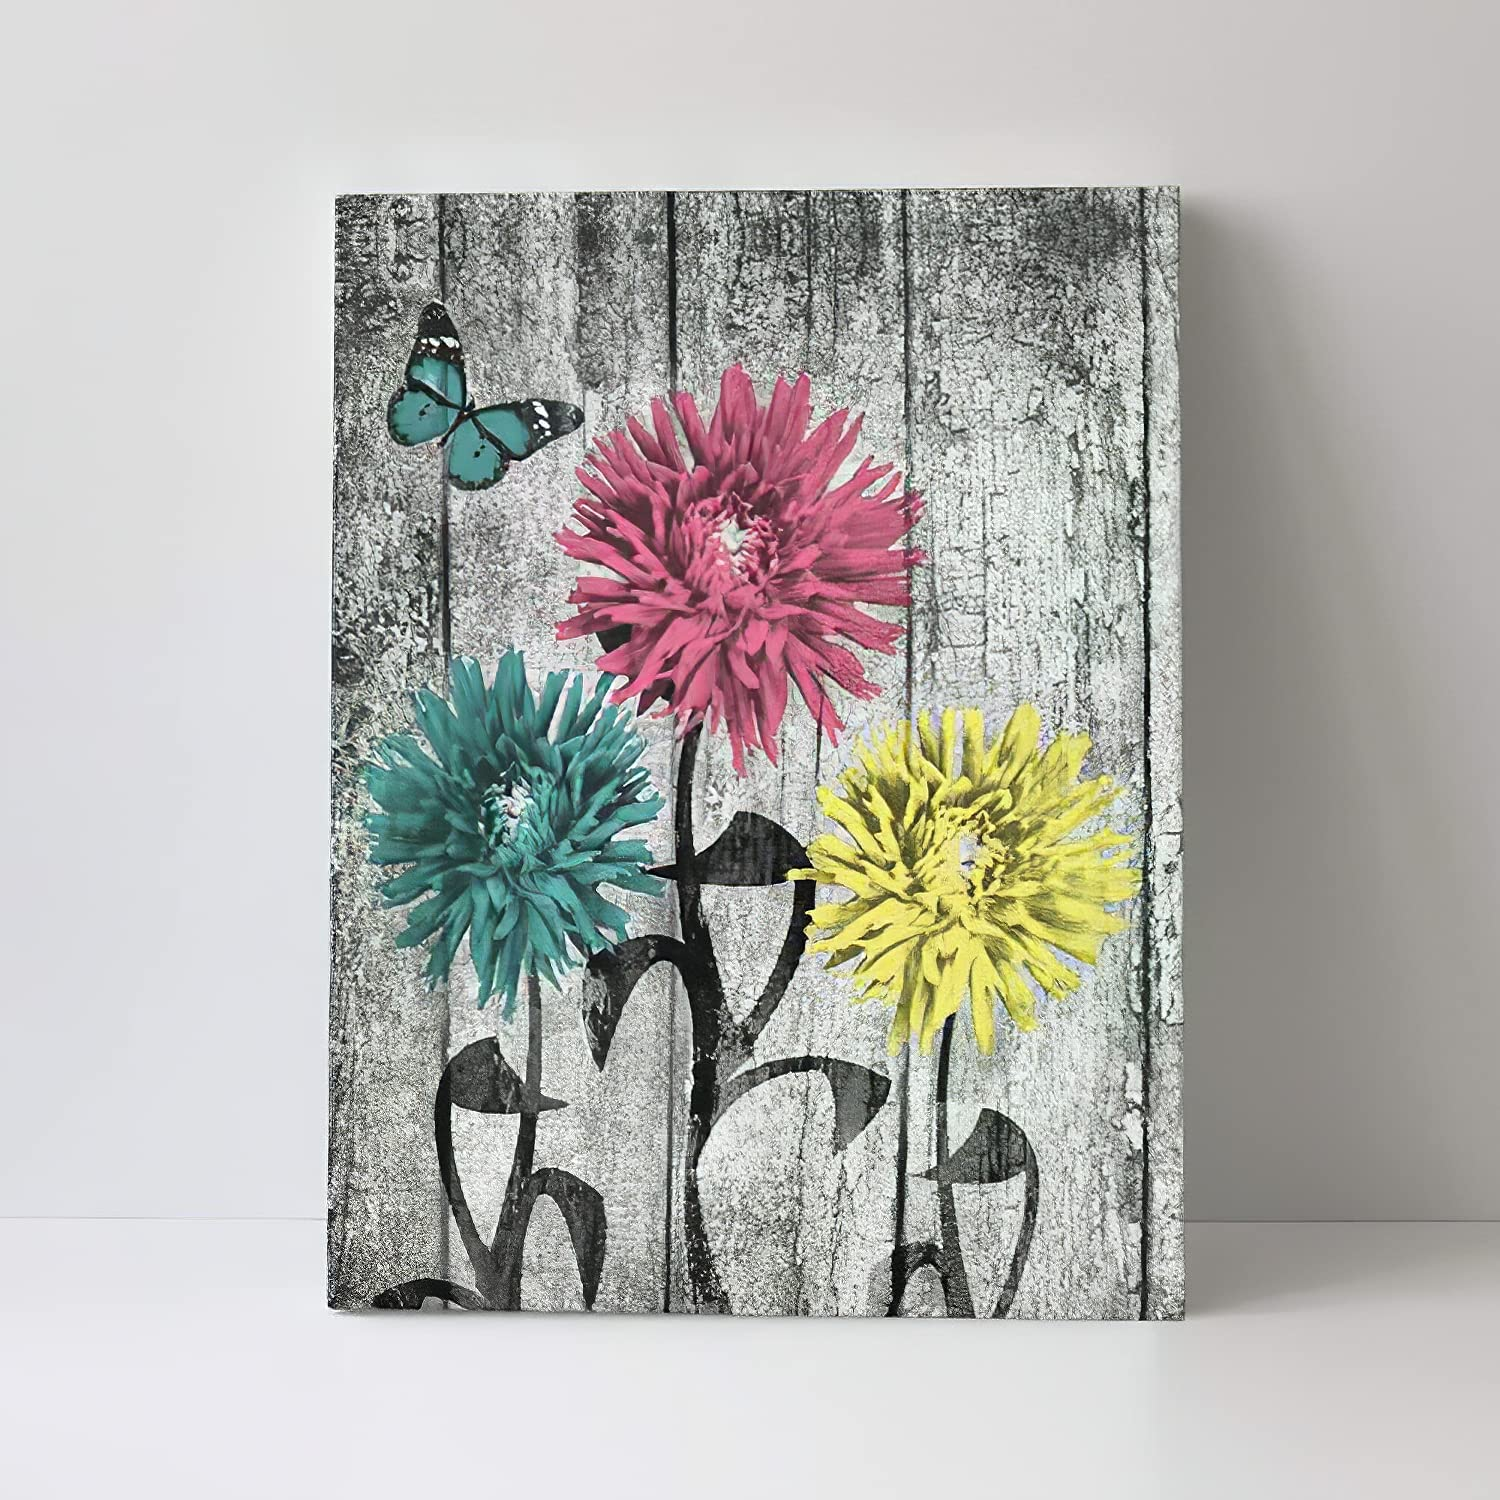 Abstract Retro Flower Canvas Wall Art Decor (12x16 in) Butterfly Fly towards chrysanthemum's Wooden picture frame for Bedroom, Dining Room, Office, Home Decor